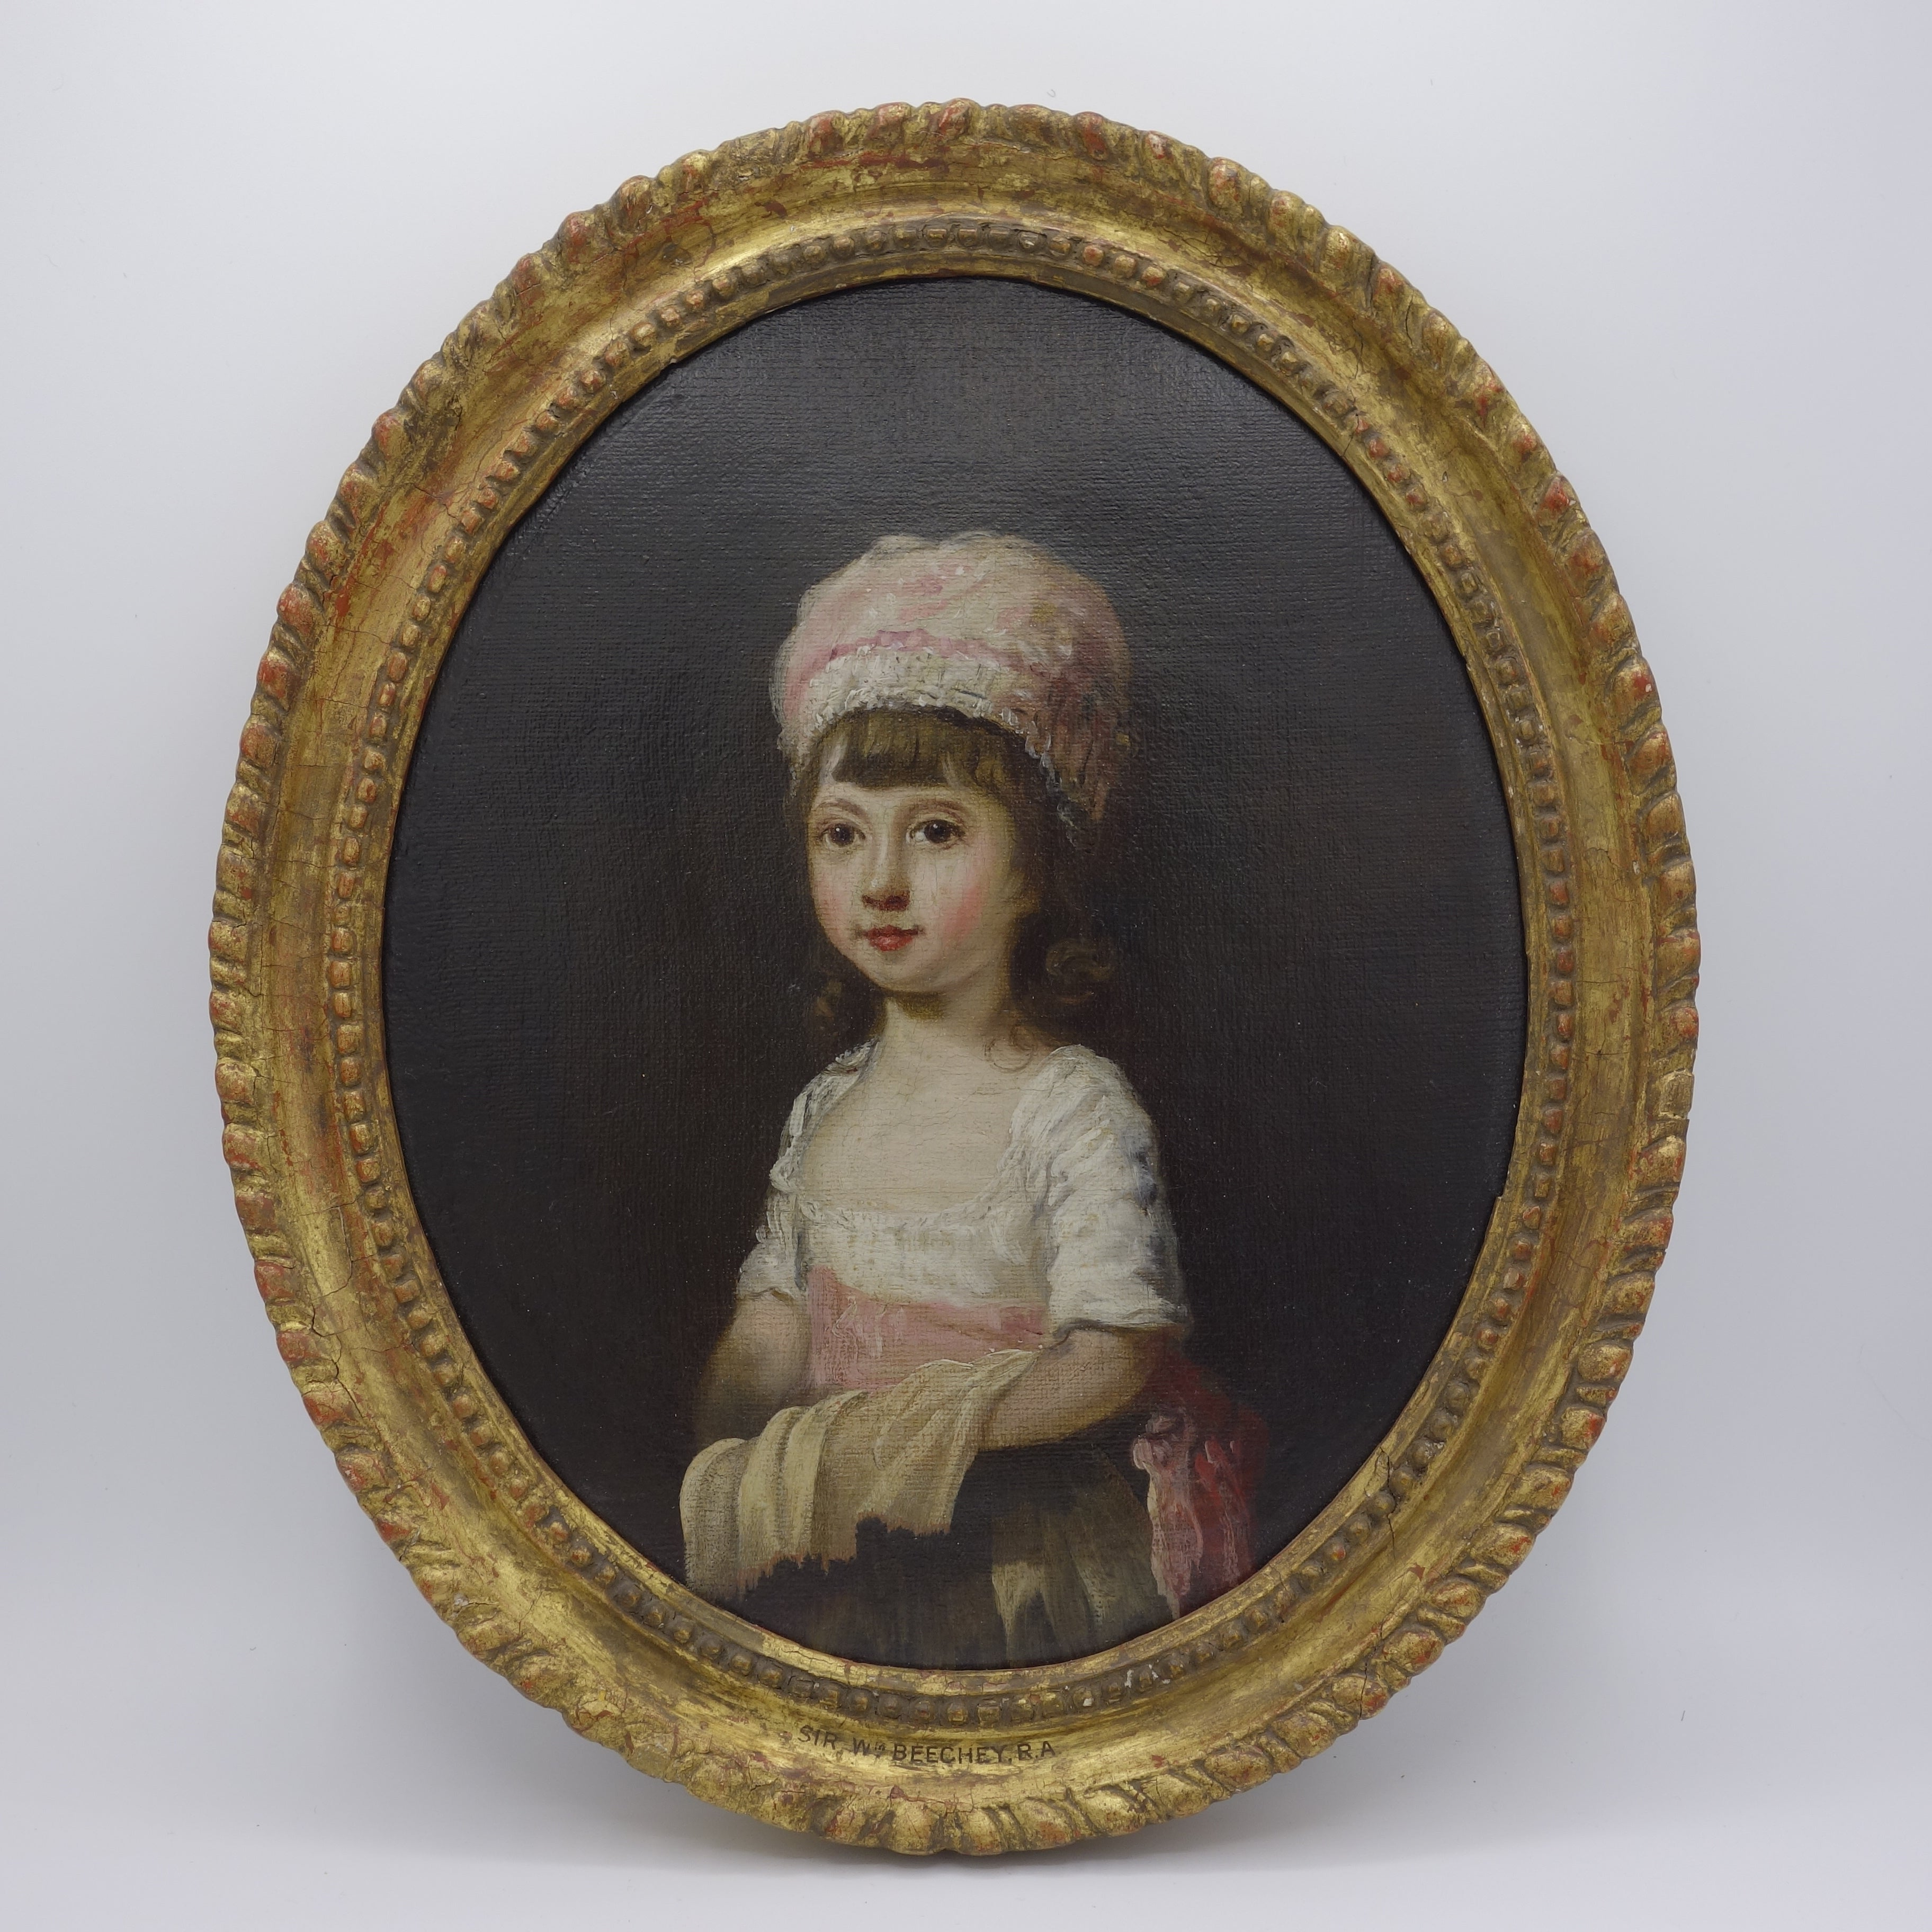 18th century Portrait of  a Young Girl wearing a Pink Bonnet